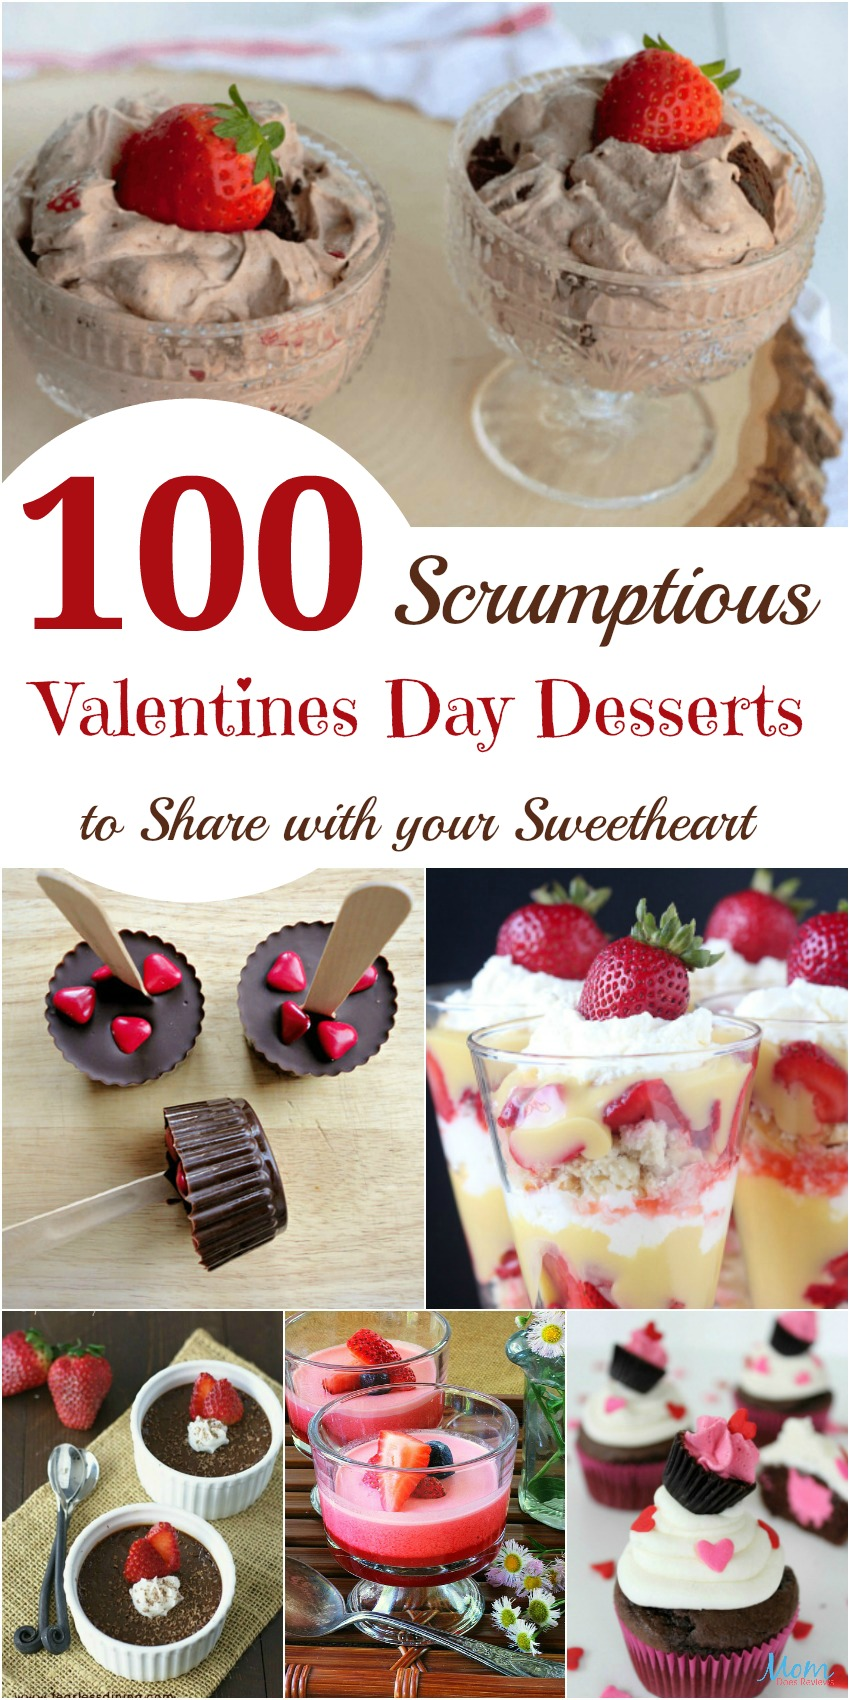 100 Scrumptious Valentines Day Desserts to Share with your Honey banner